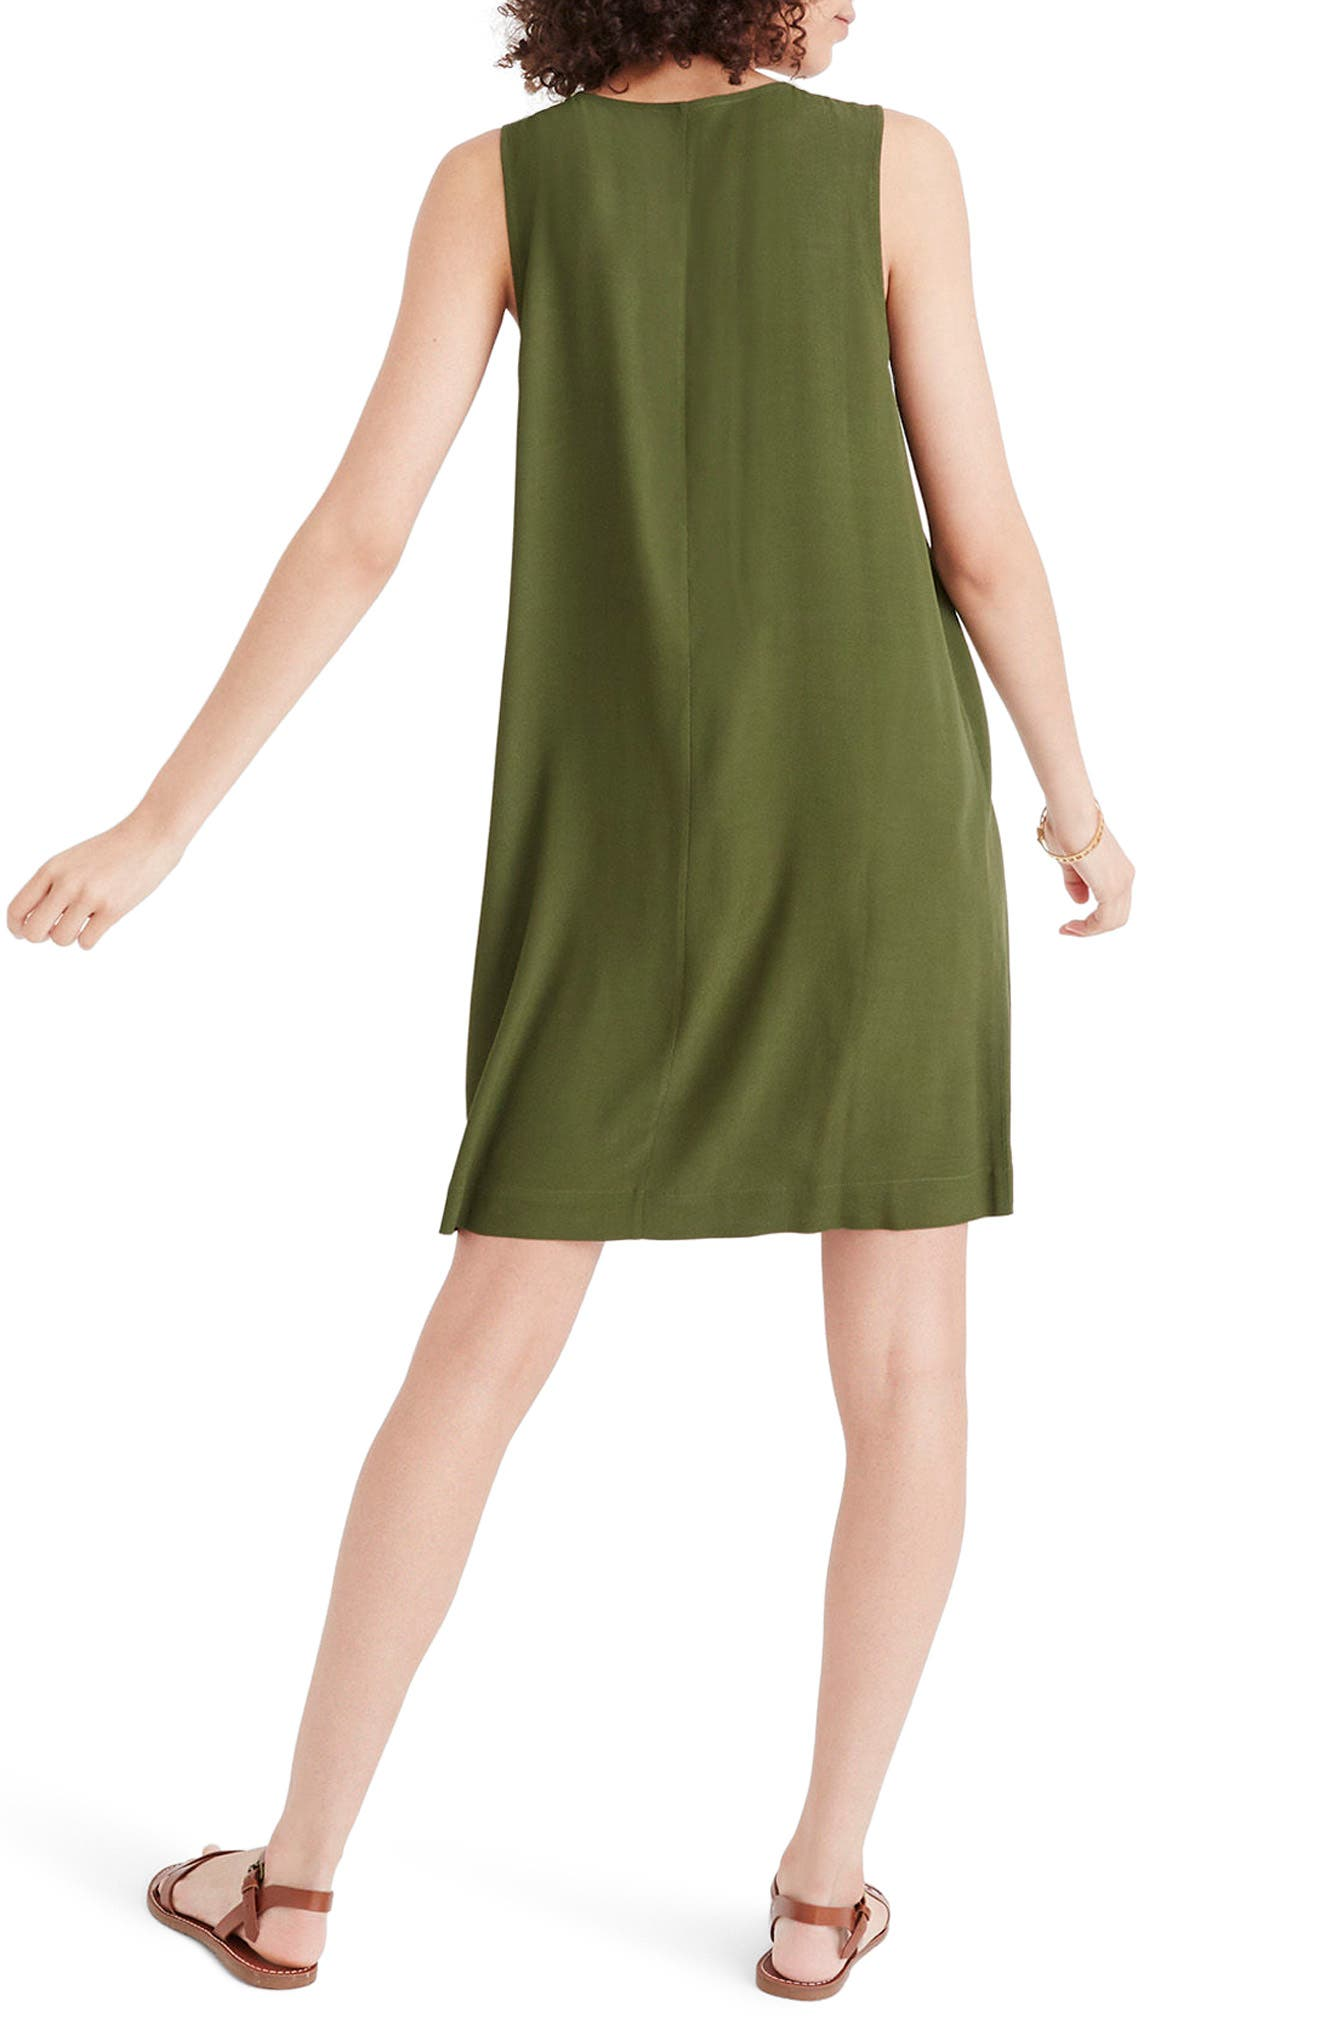 Heather Button Front Dress,                             Alternate thumbnail 2, color,                             Sweet Balsam